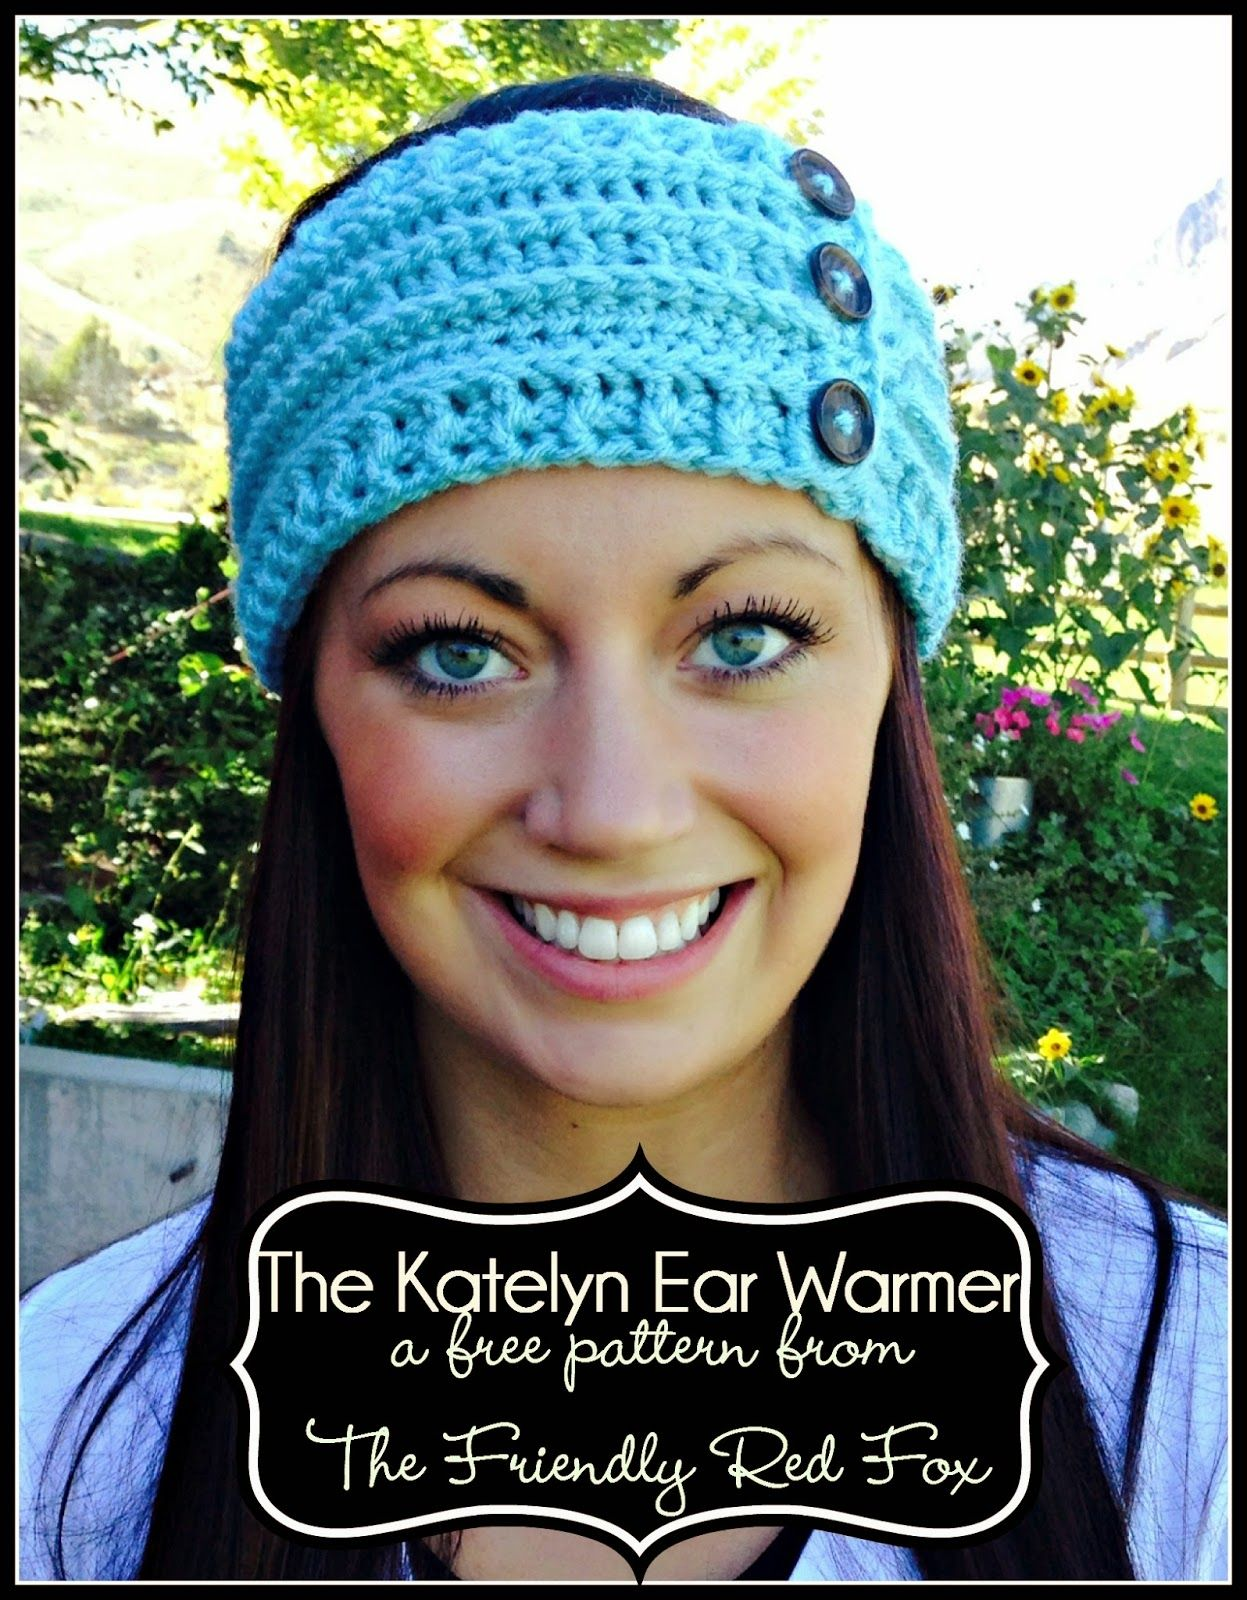 Crochet Headwrap Earwarmer | Pinterest | Free crochet, Crochet and ...